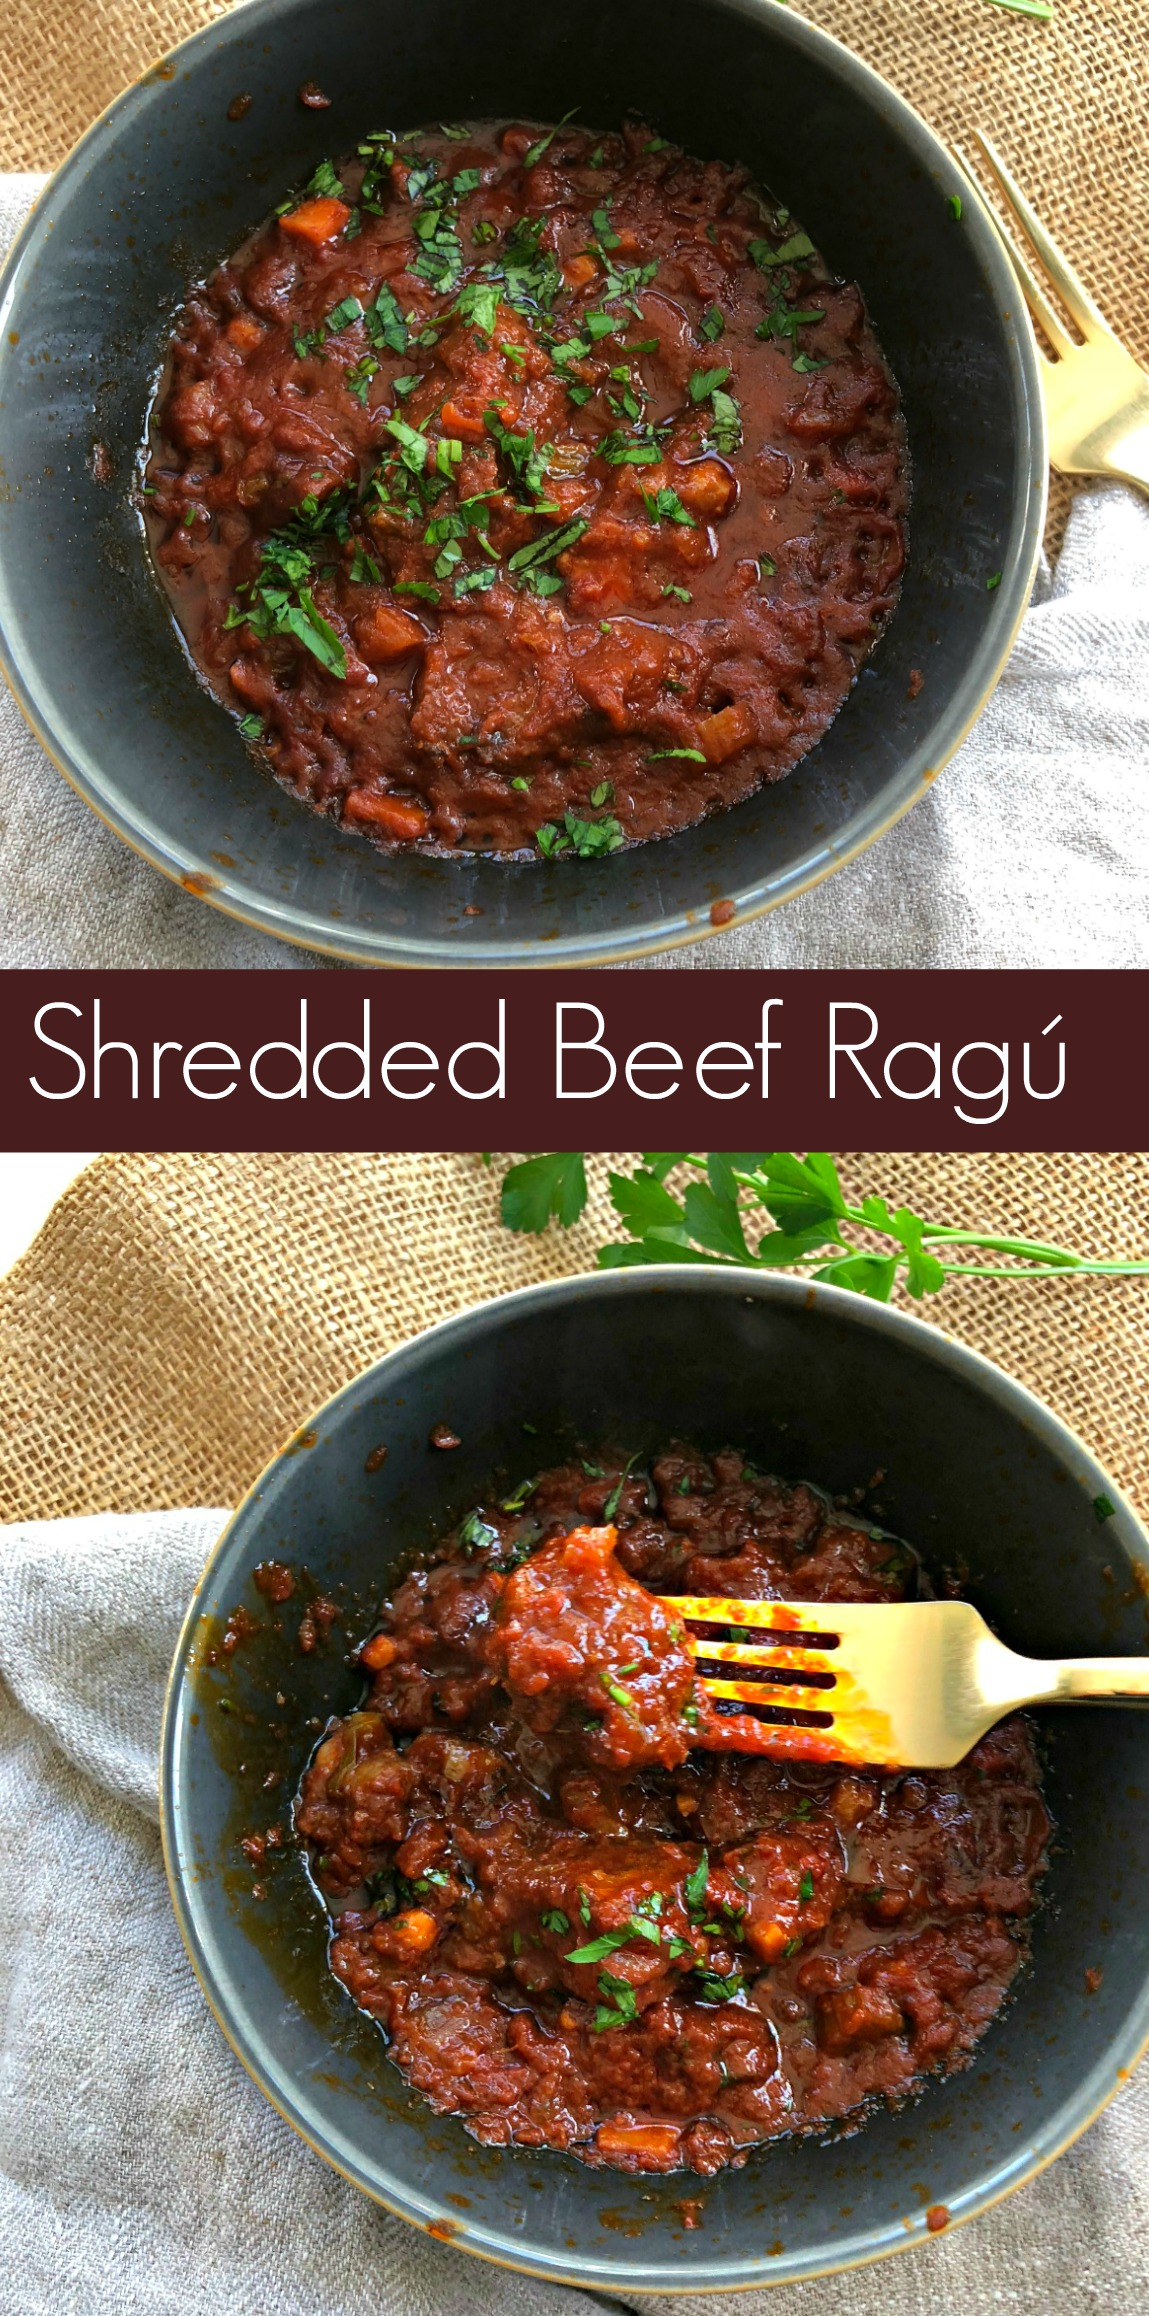 How to Make Slow Cooker Shredded Beef Ragú from Spinach Tiger